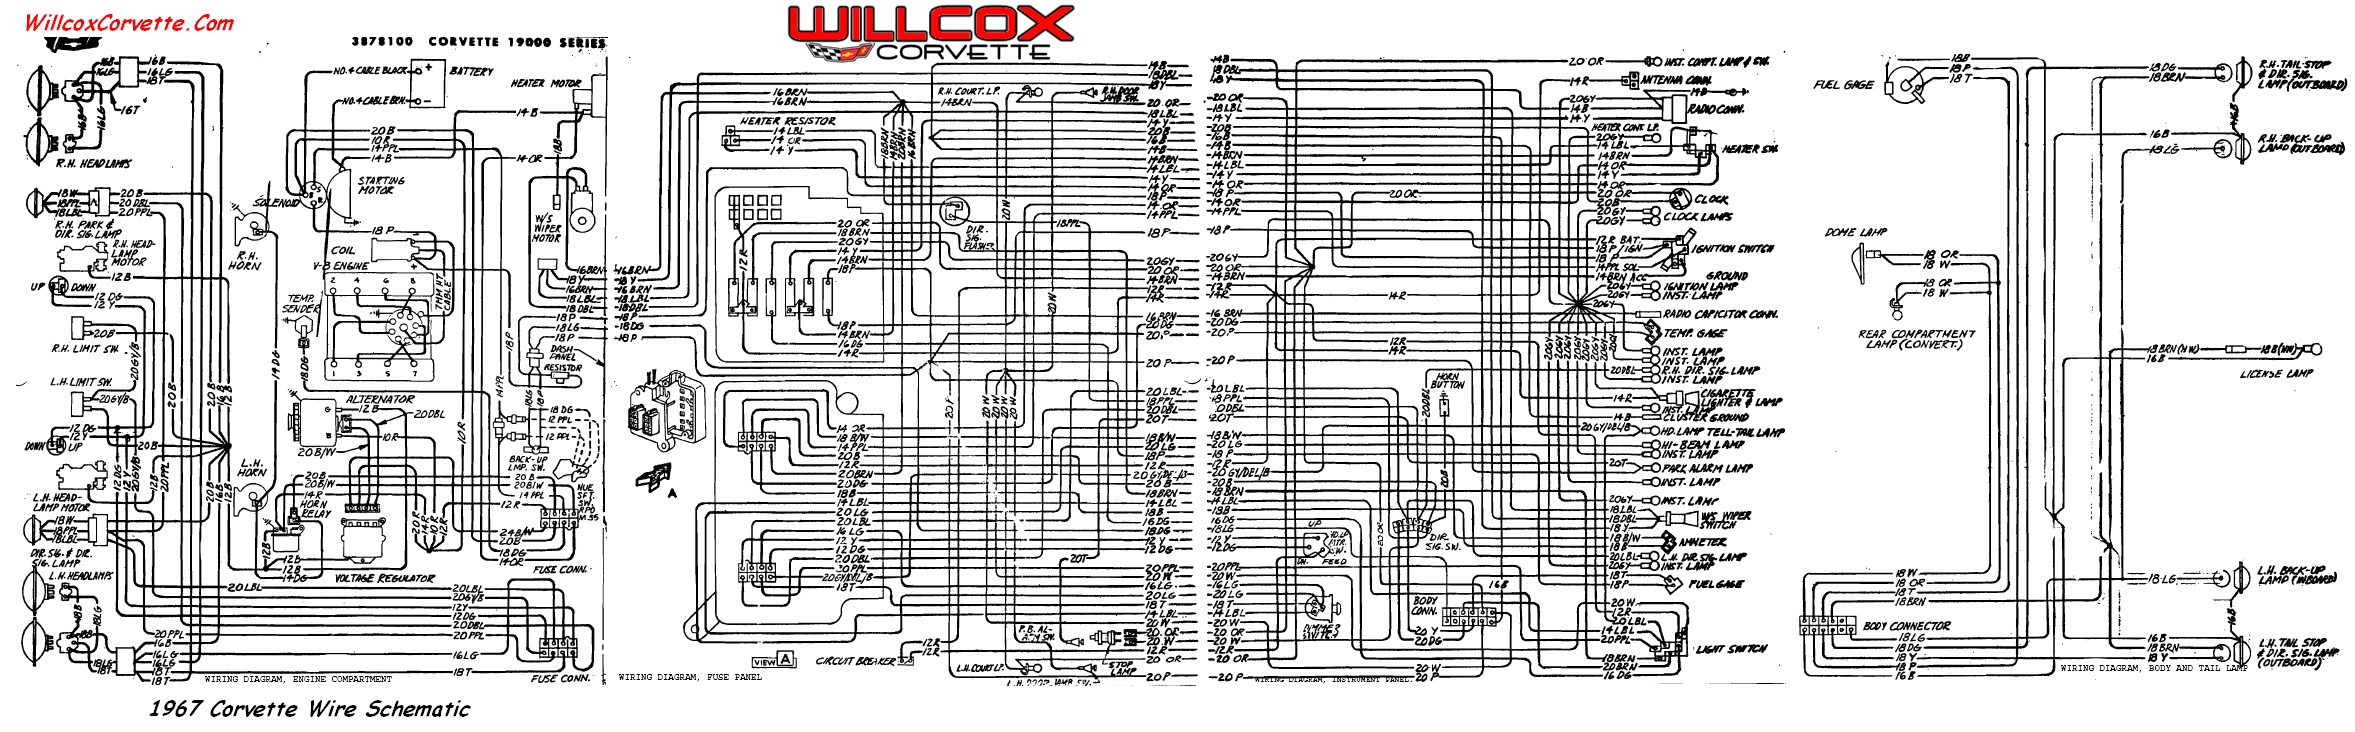 67 wire schematic for tracing wires png